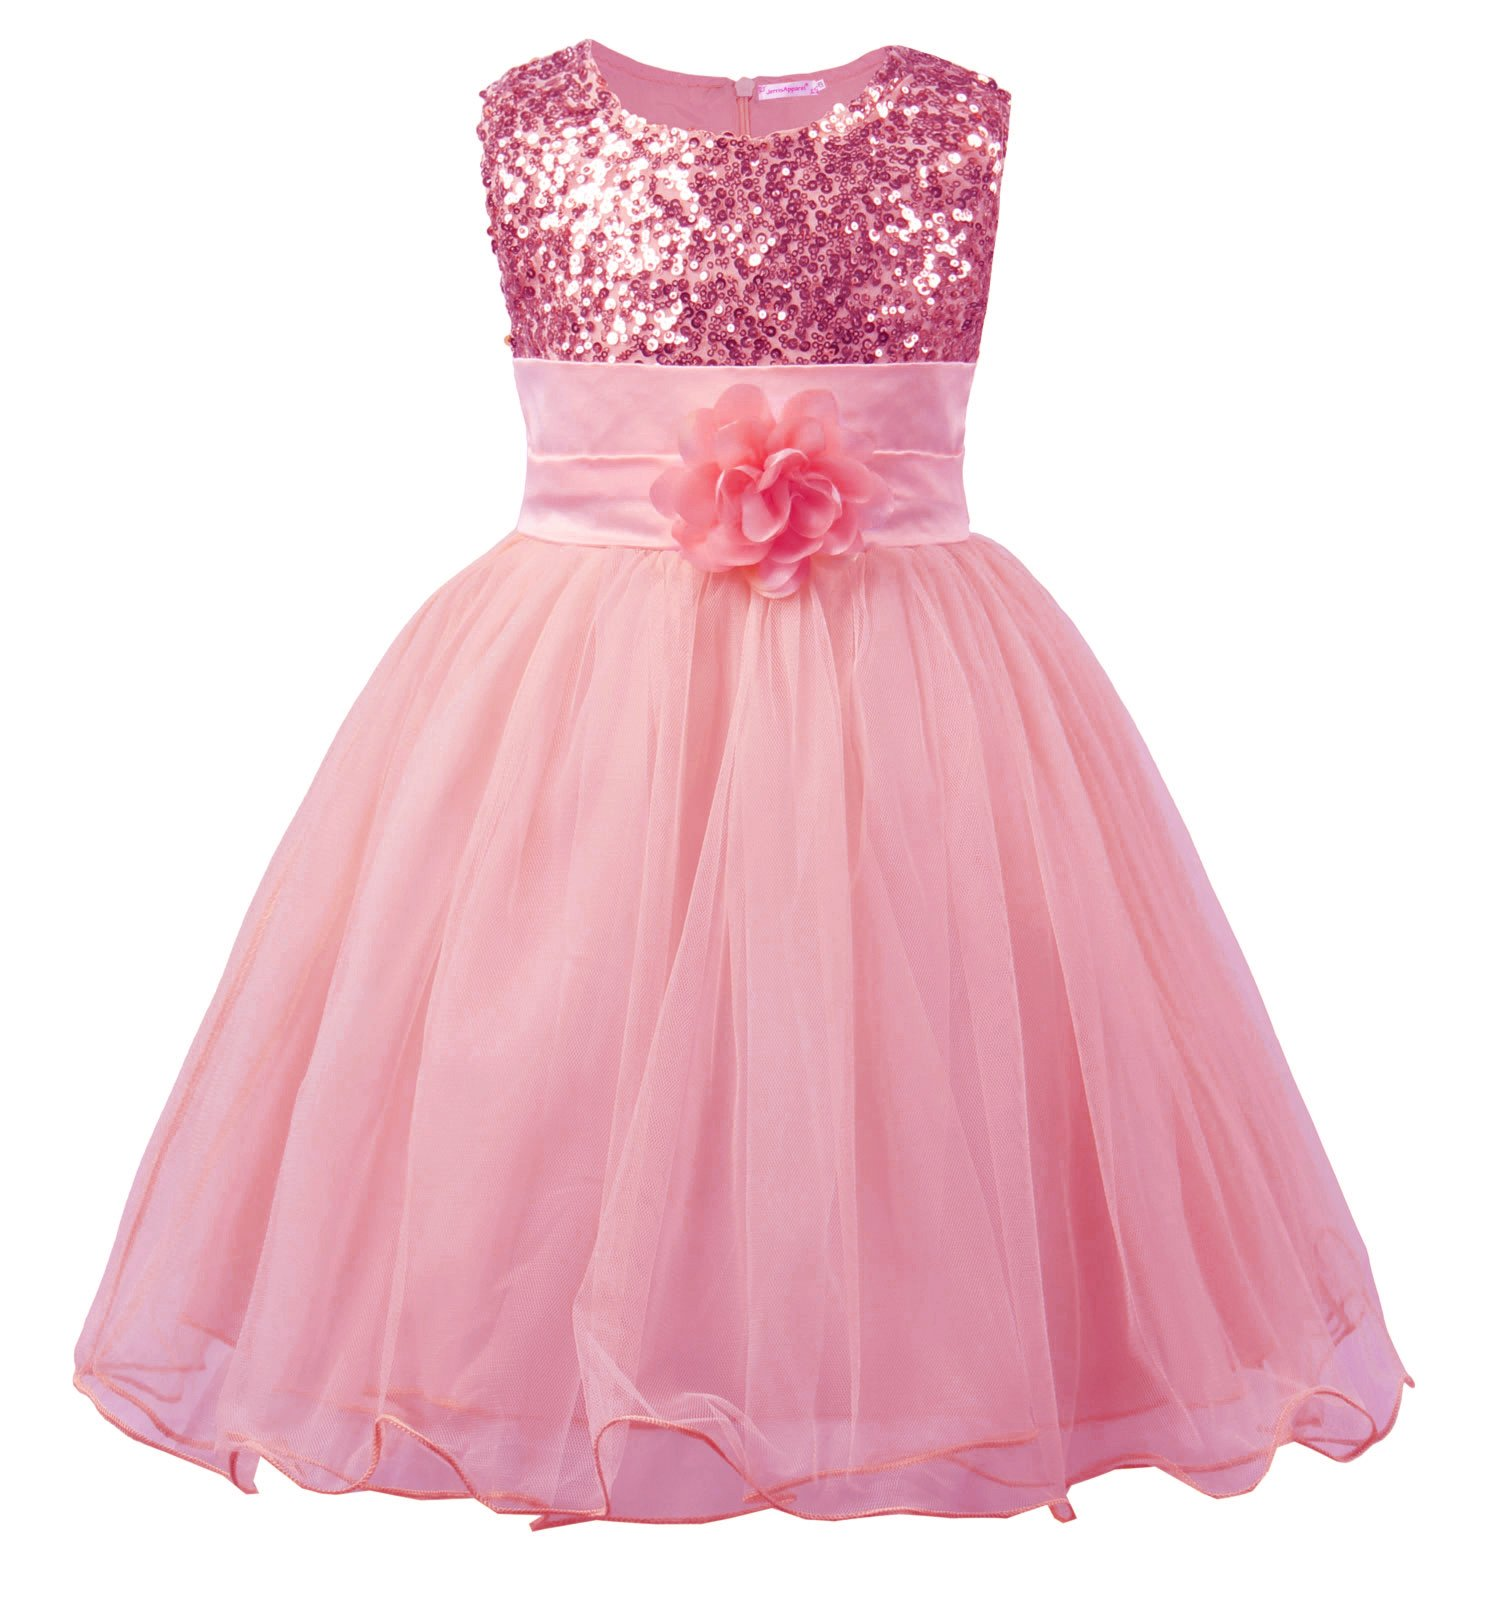 JerrisApparel Little Girls' Sequin Mesh Flower Ball Gown Party Dress Tulle Prom (4T, Pink)